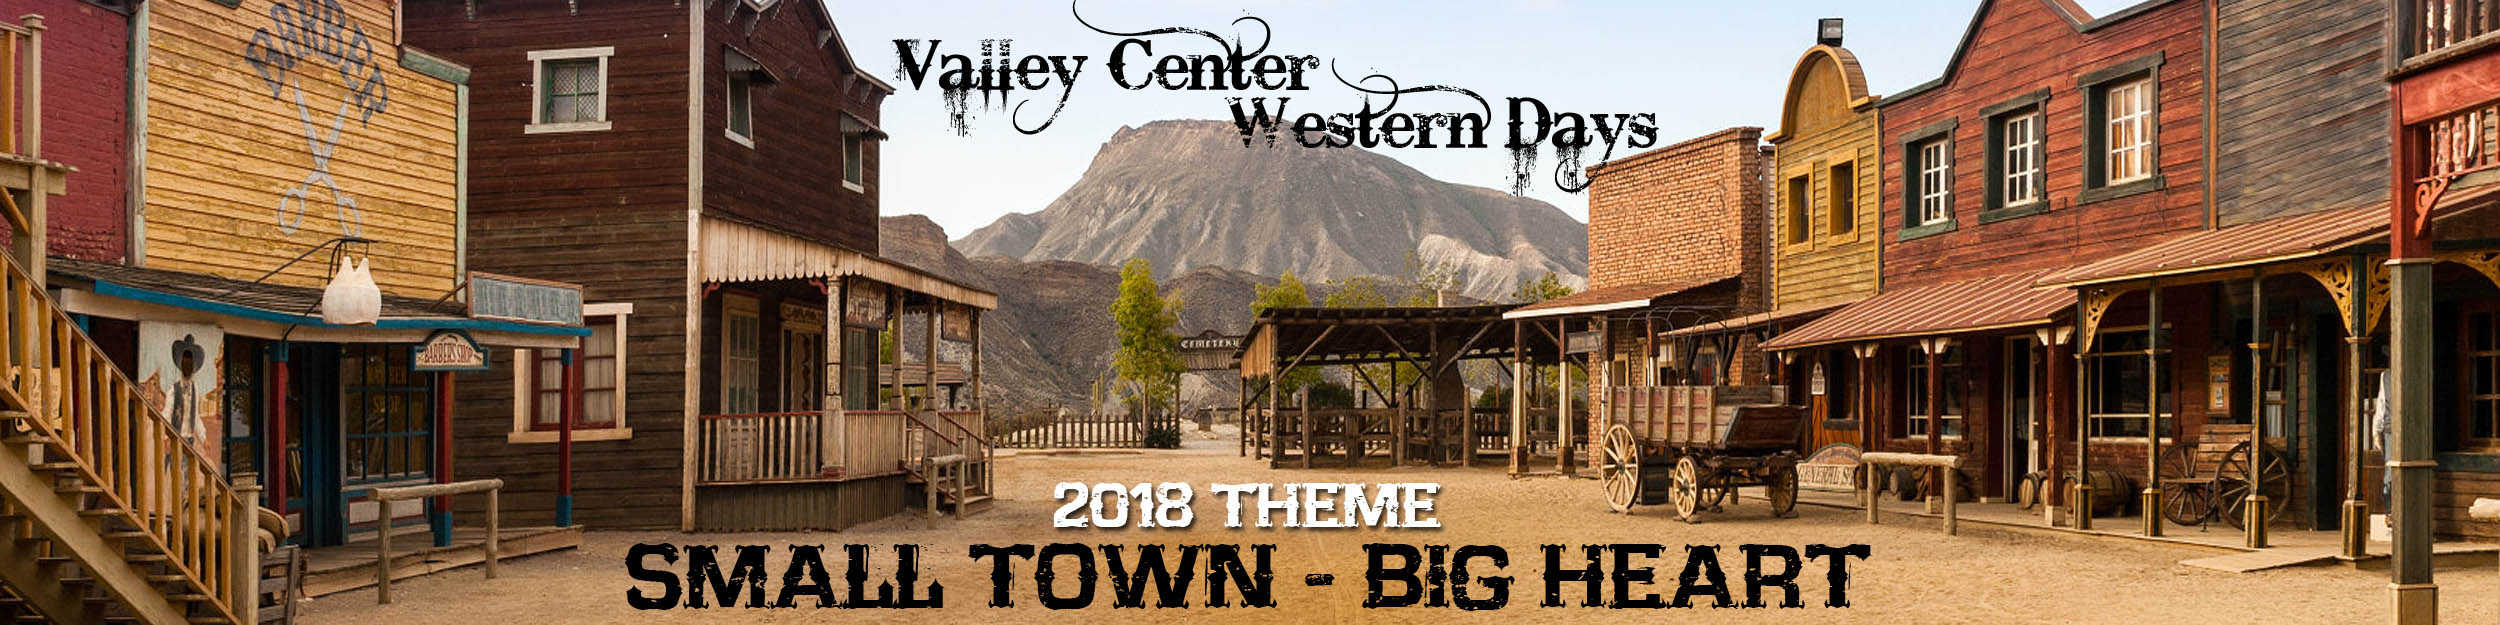 Valley Center Western Days